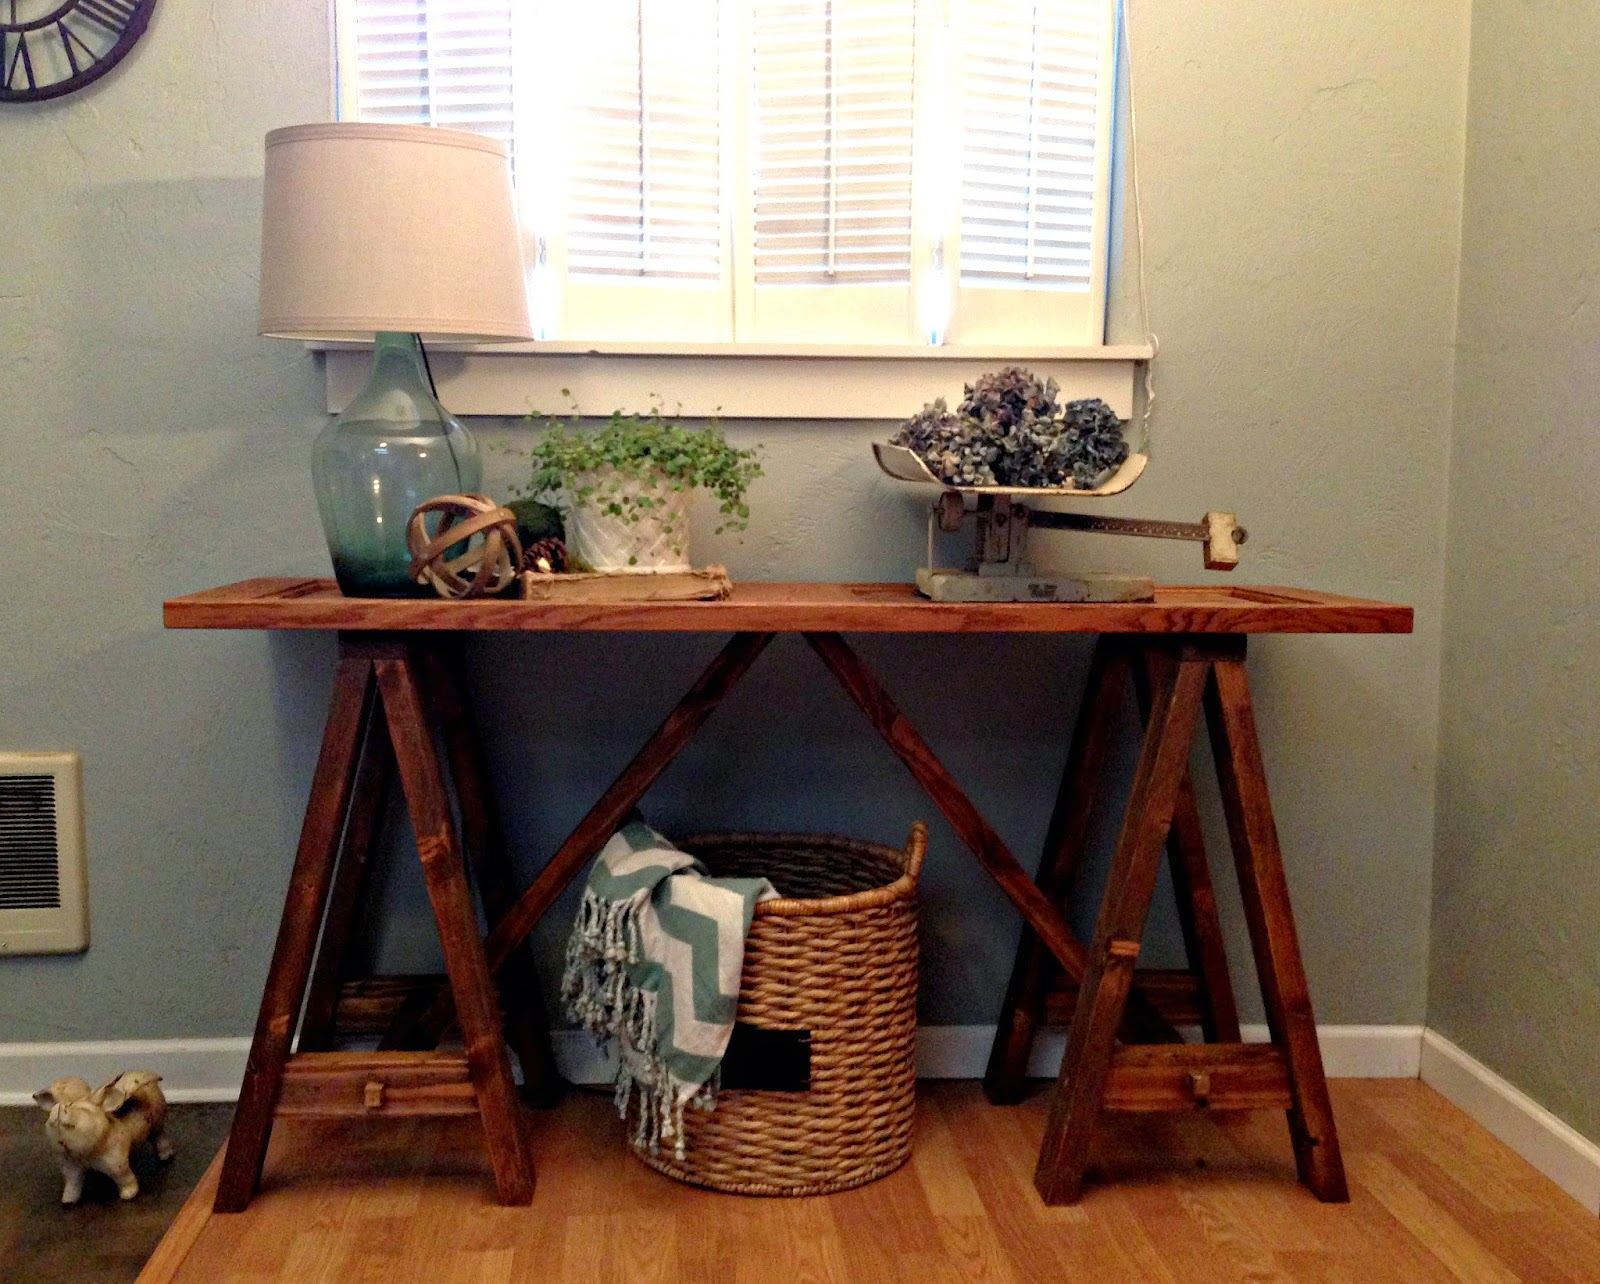 DIY Saw Horse Console Table